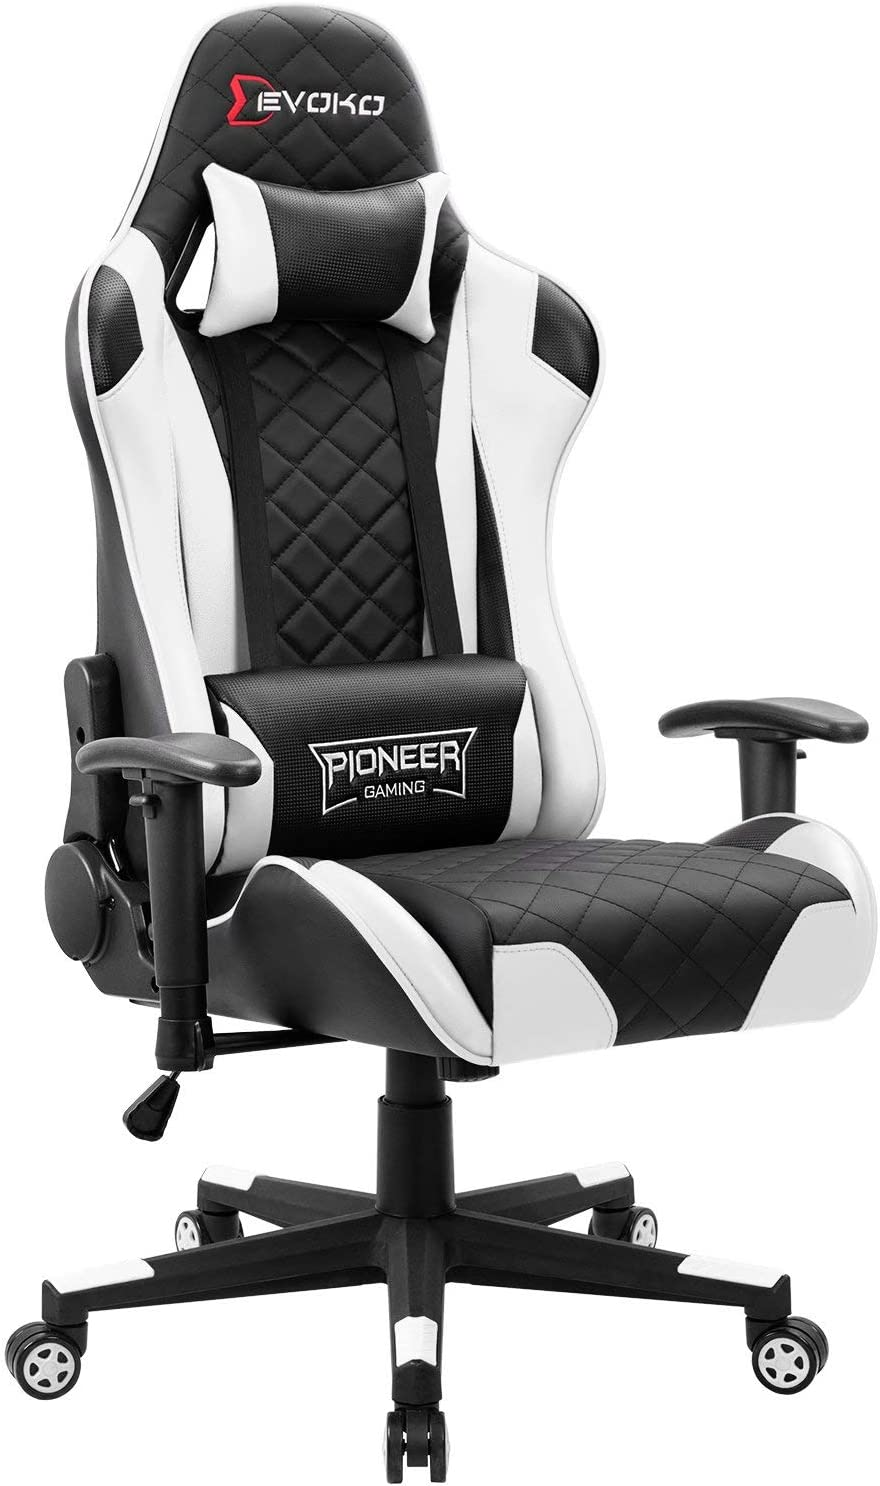 Devoko Max 82% OFF Gaming Chair Racing Cheap mail order specialty store Style Computer High with A Back